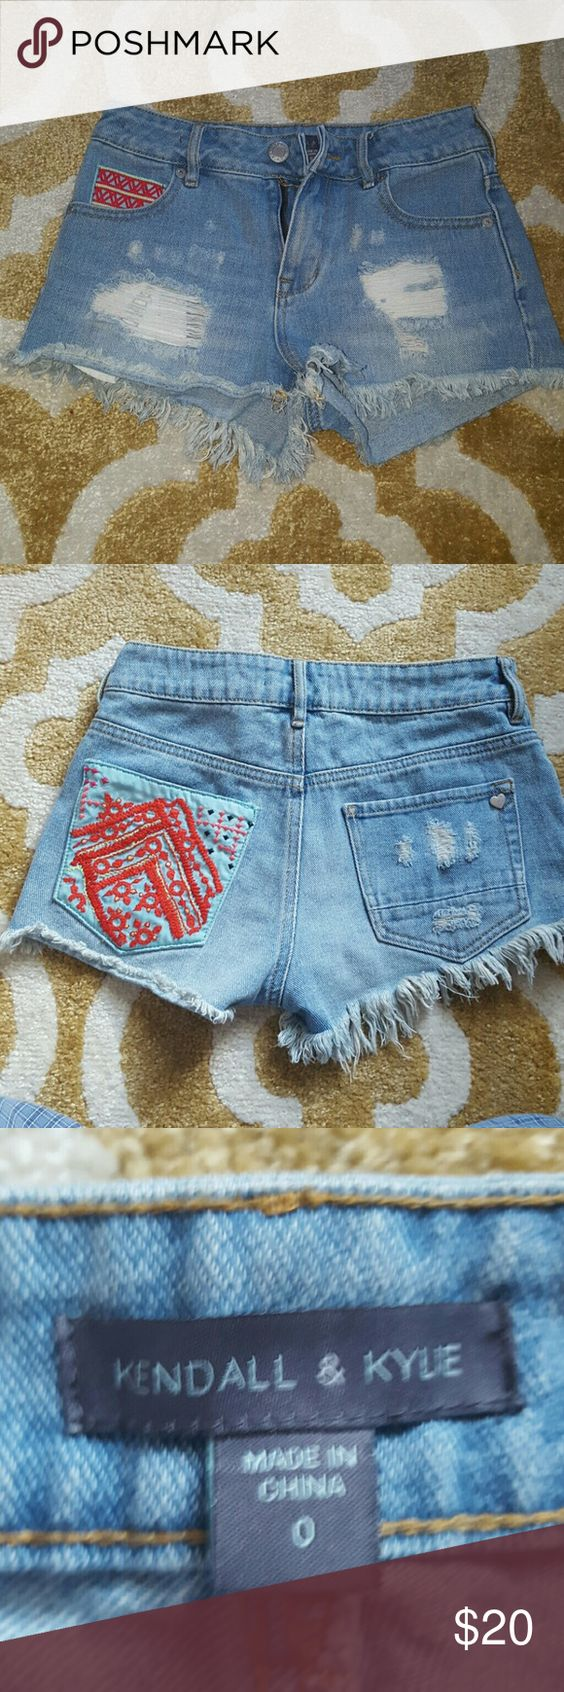 KENDALL & KYLIE DENIM HIGH WAISTED SHORTS Size 0, good condition! Kendall & Kylie Shorts Jean Shorts